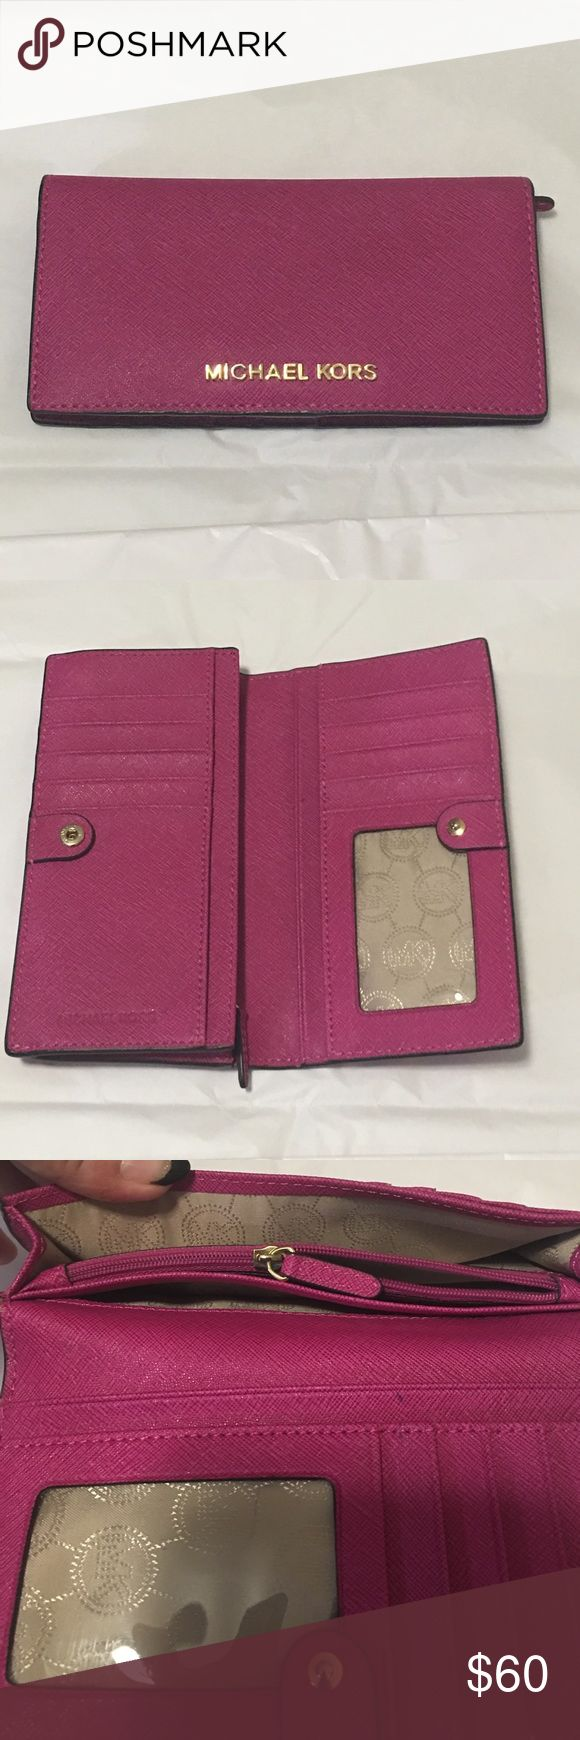 Michael Kors bi fold remind snap closure wallet Michael Kors bifold snap closure women's wallet in pomegranate with gold hardware and lining. 9 card slots, ID window, zippered coin pocket 6 separate pocket for bills or receipts. Michael Kors Bags Wallets